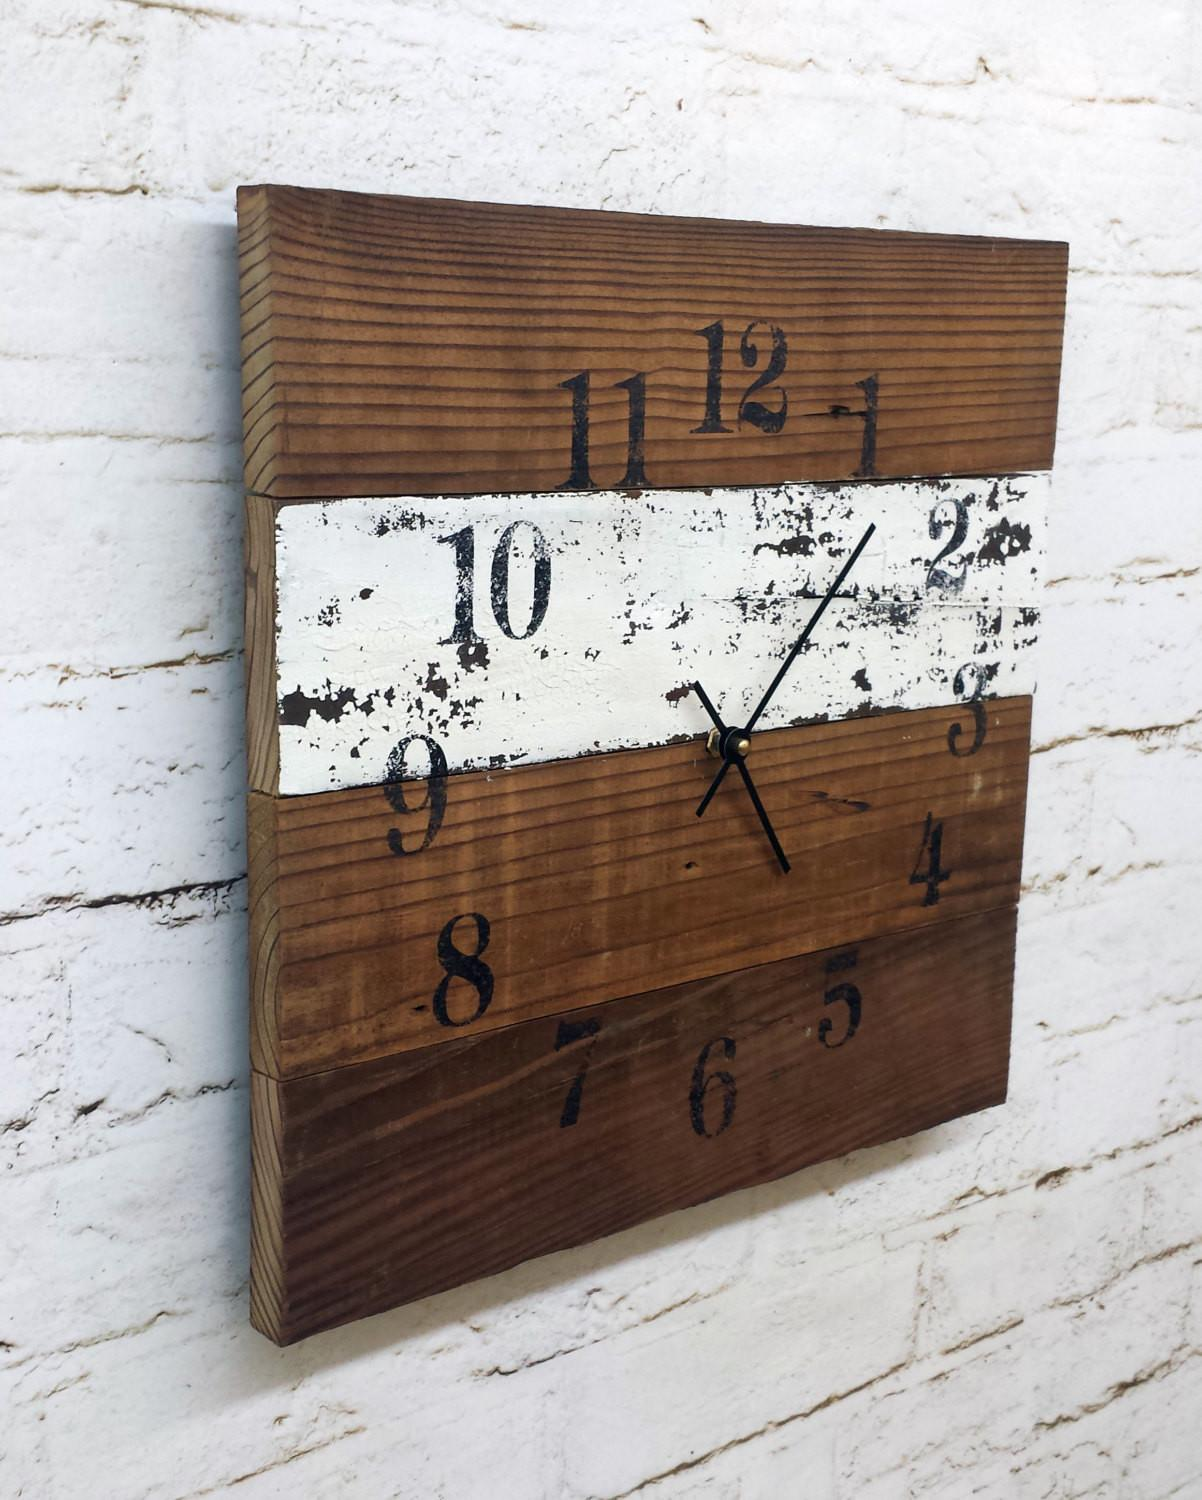 Reclaimed Barn Wood Clock Recycled Like Pallet